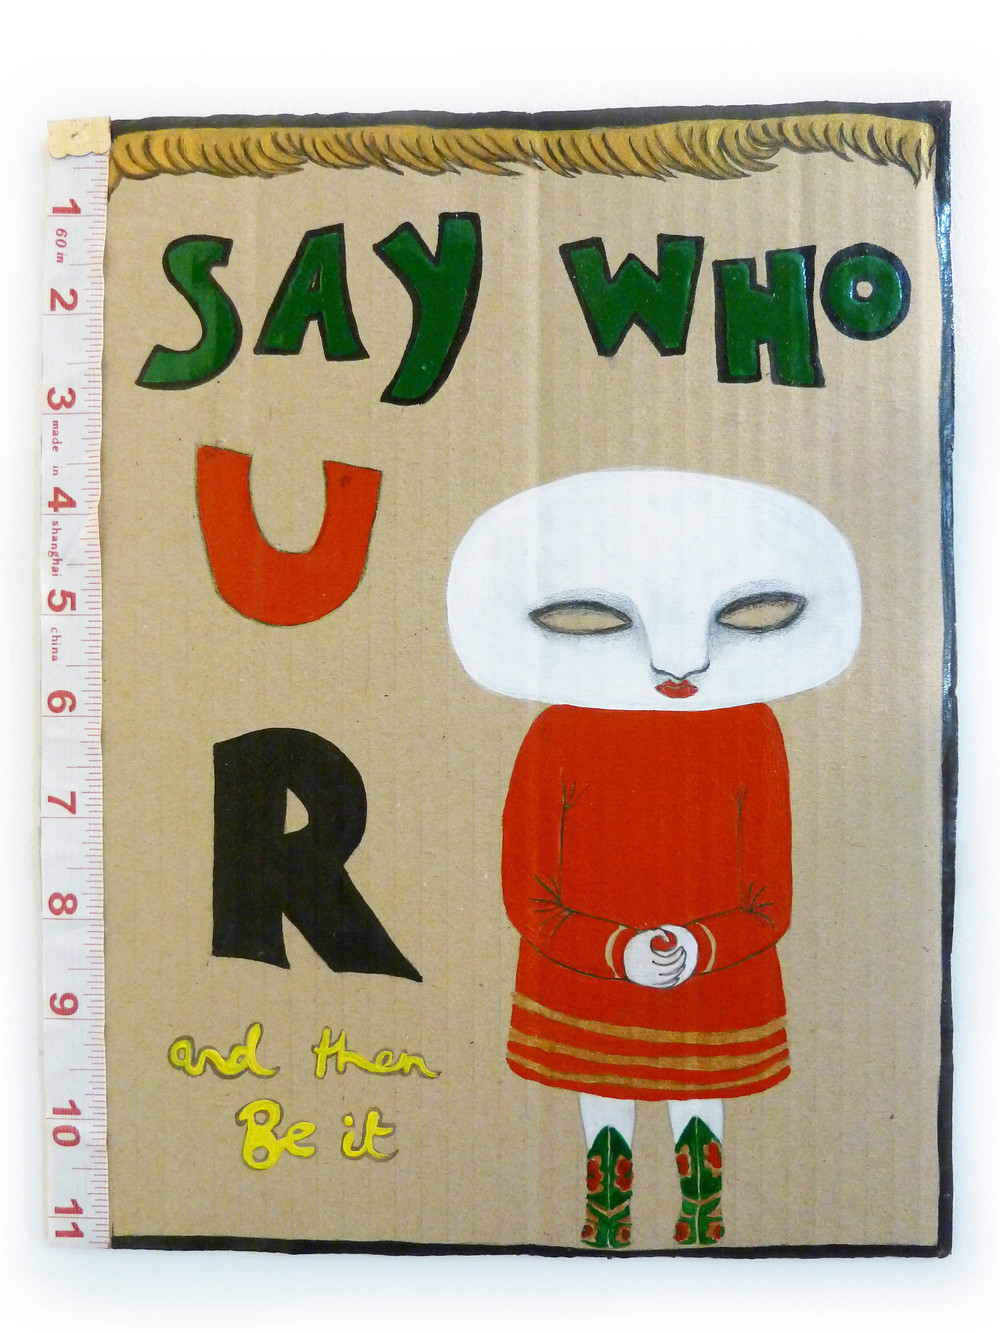 Say who you are, 2010